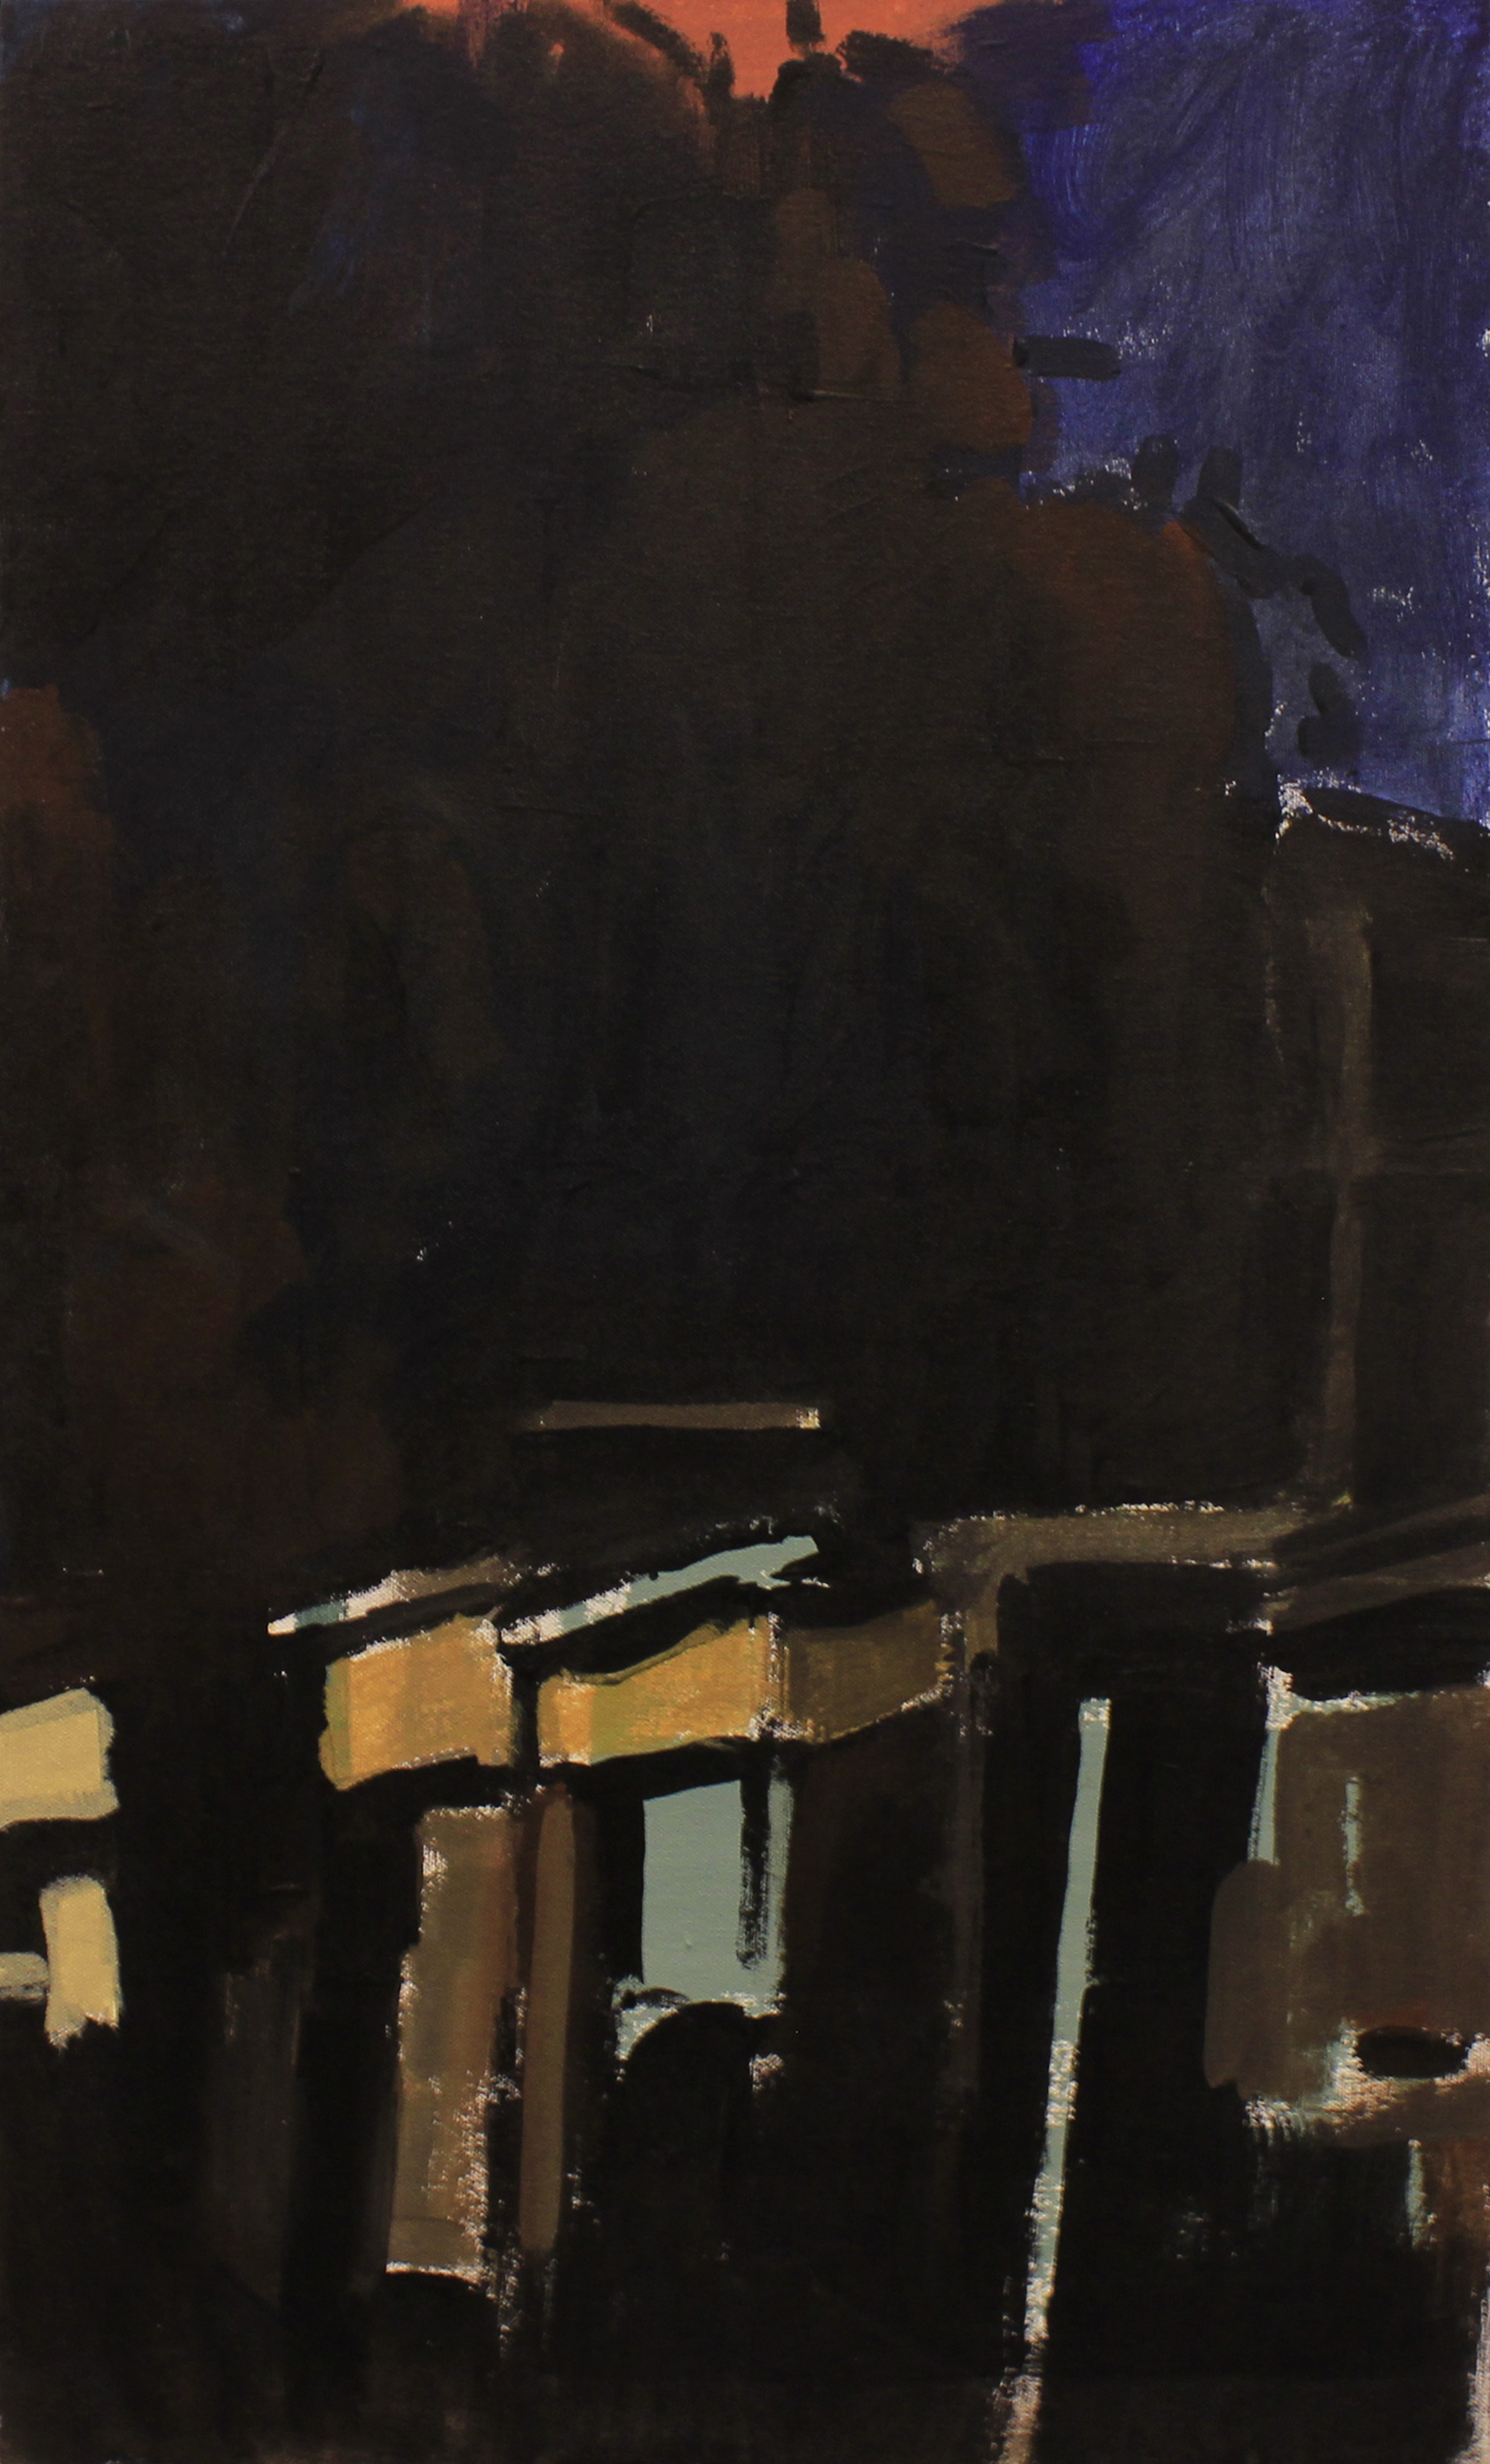 "An alley at night, acrylic on canvas, 25"" x 19"", 2016, private collection"